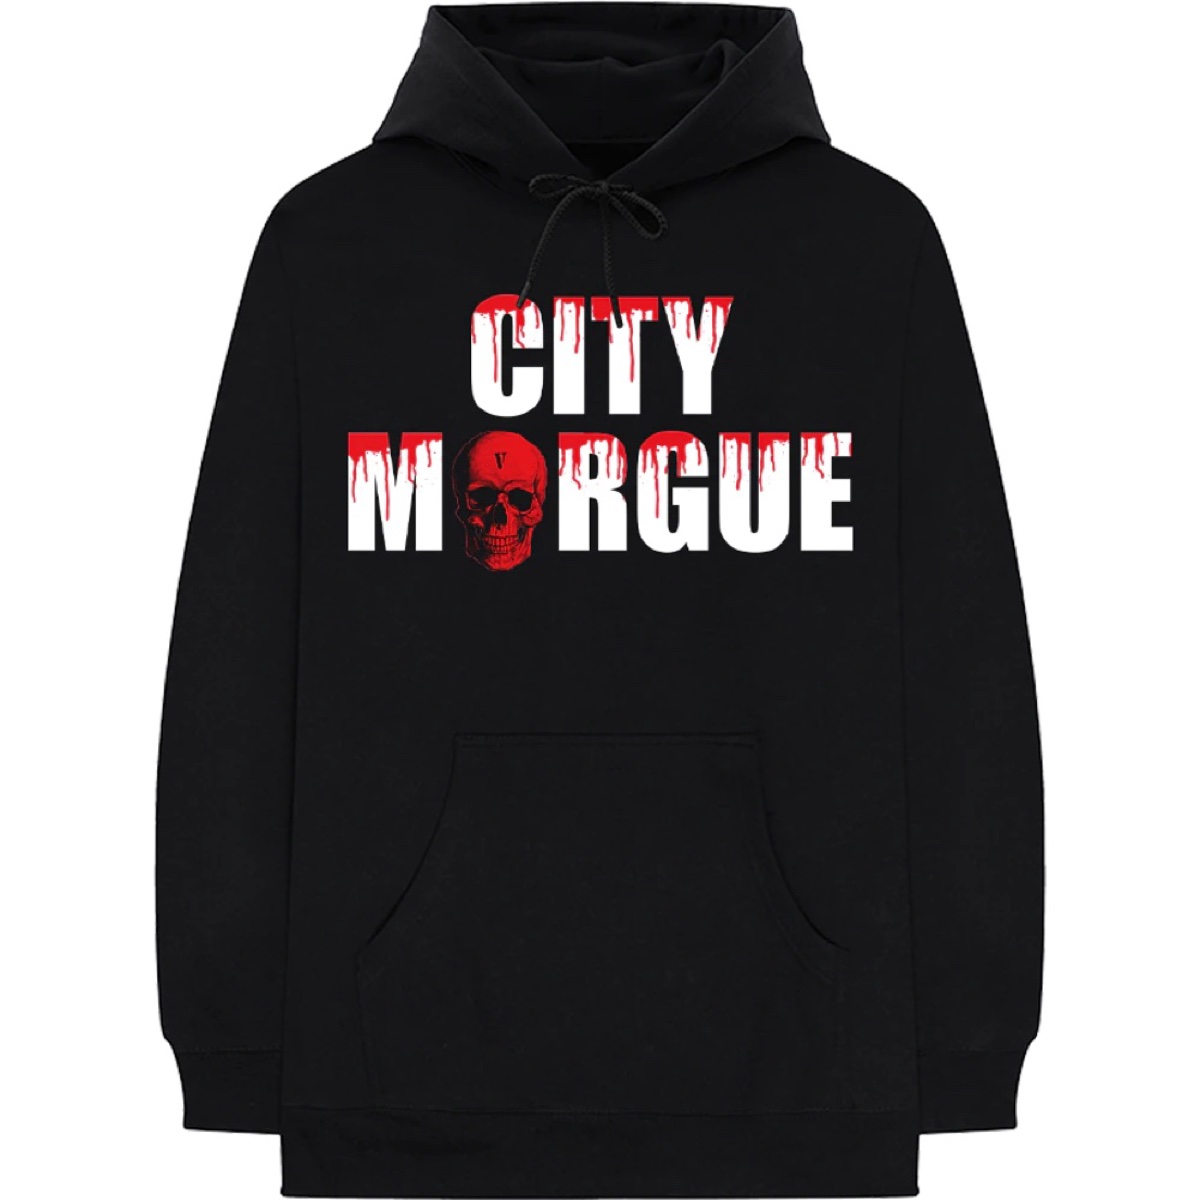 Vlone x City Morgue Dogs Black Hoodie Large